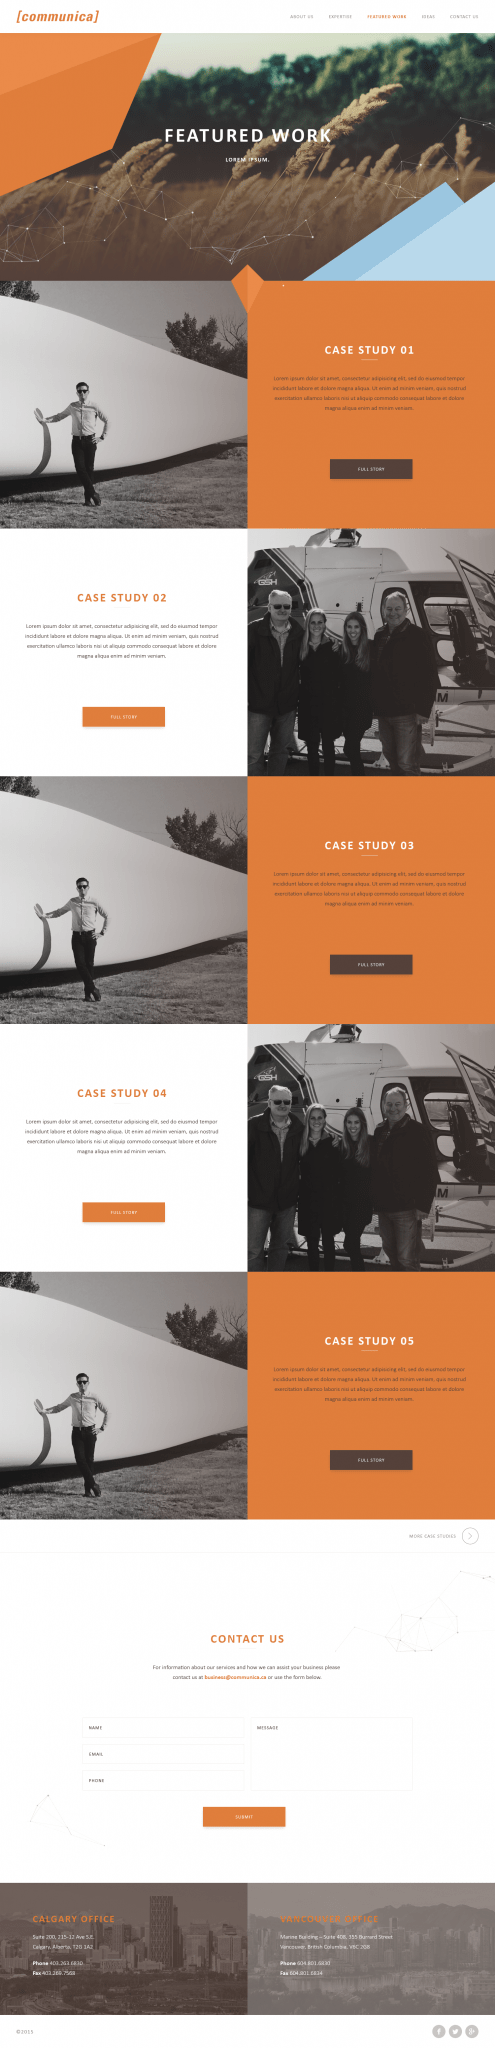 communica-featured-work-archive-01